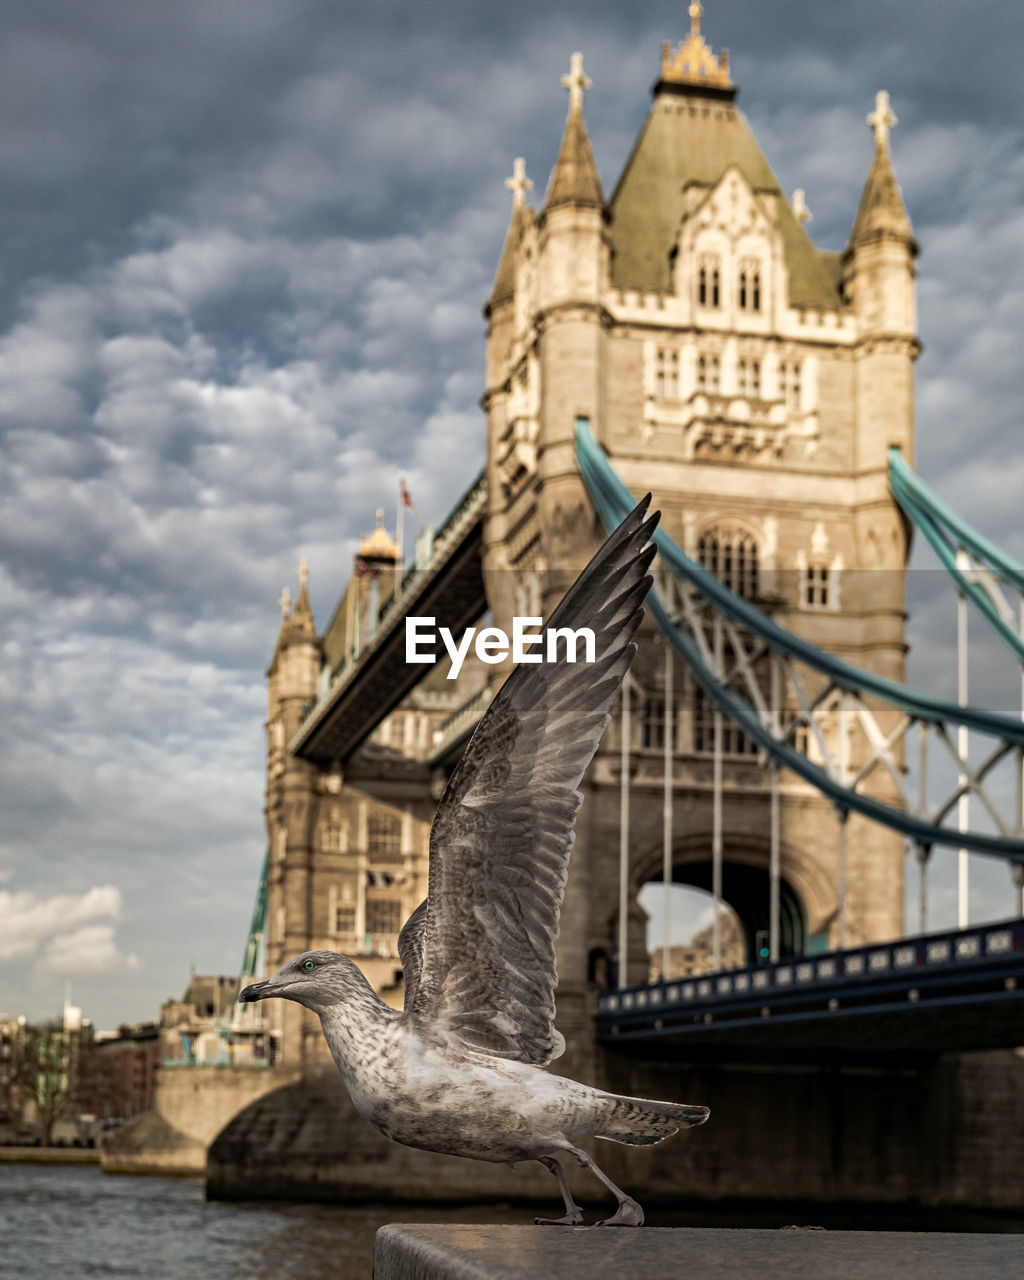 View of seagull taking of in front of tower bridge and blue sky with clouds